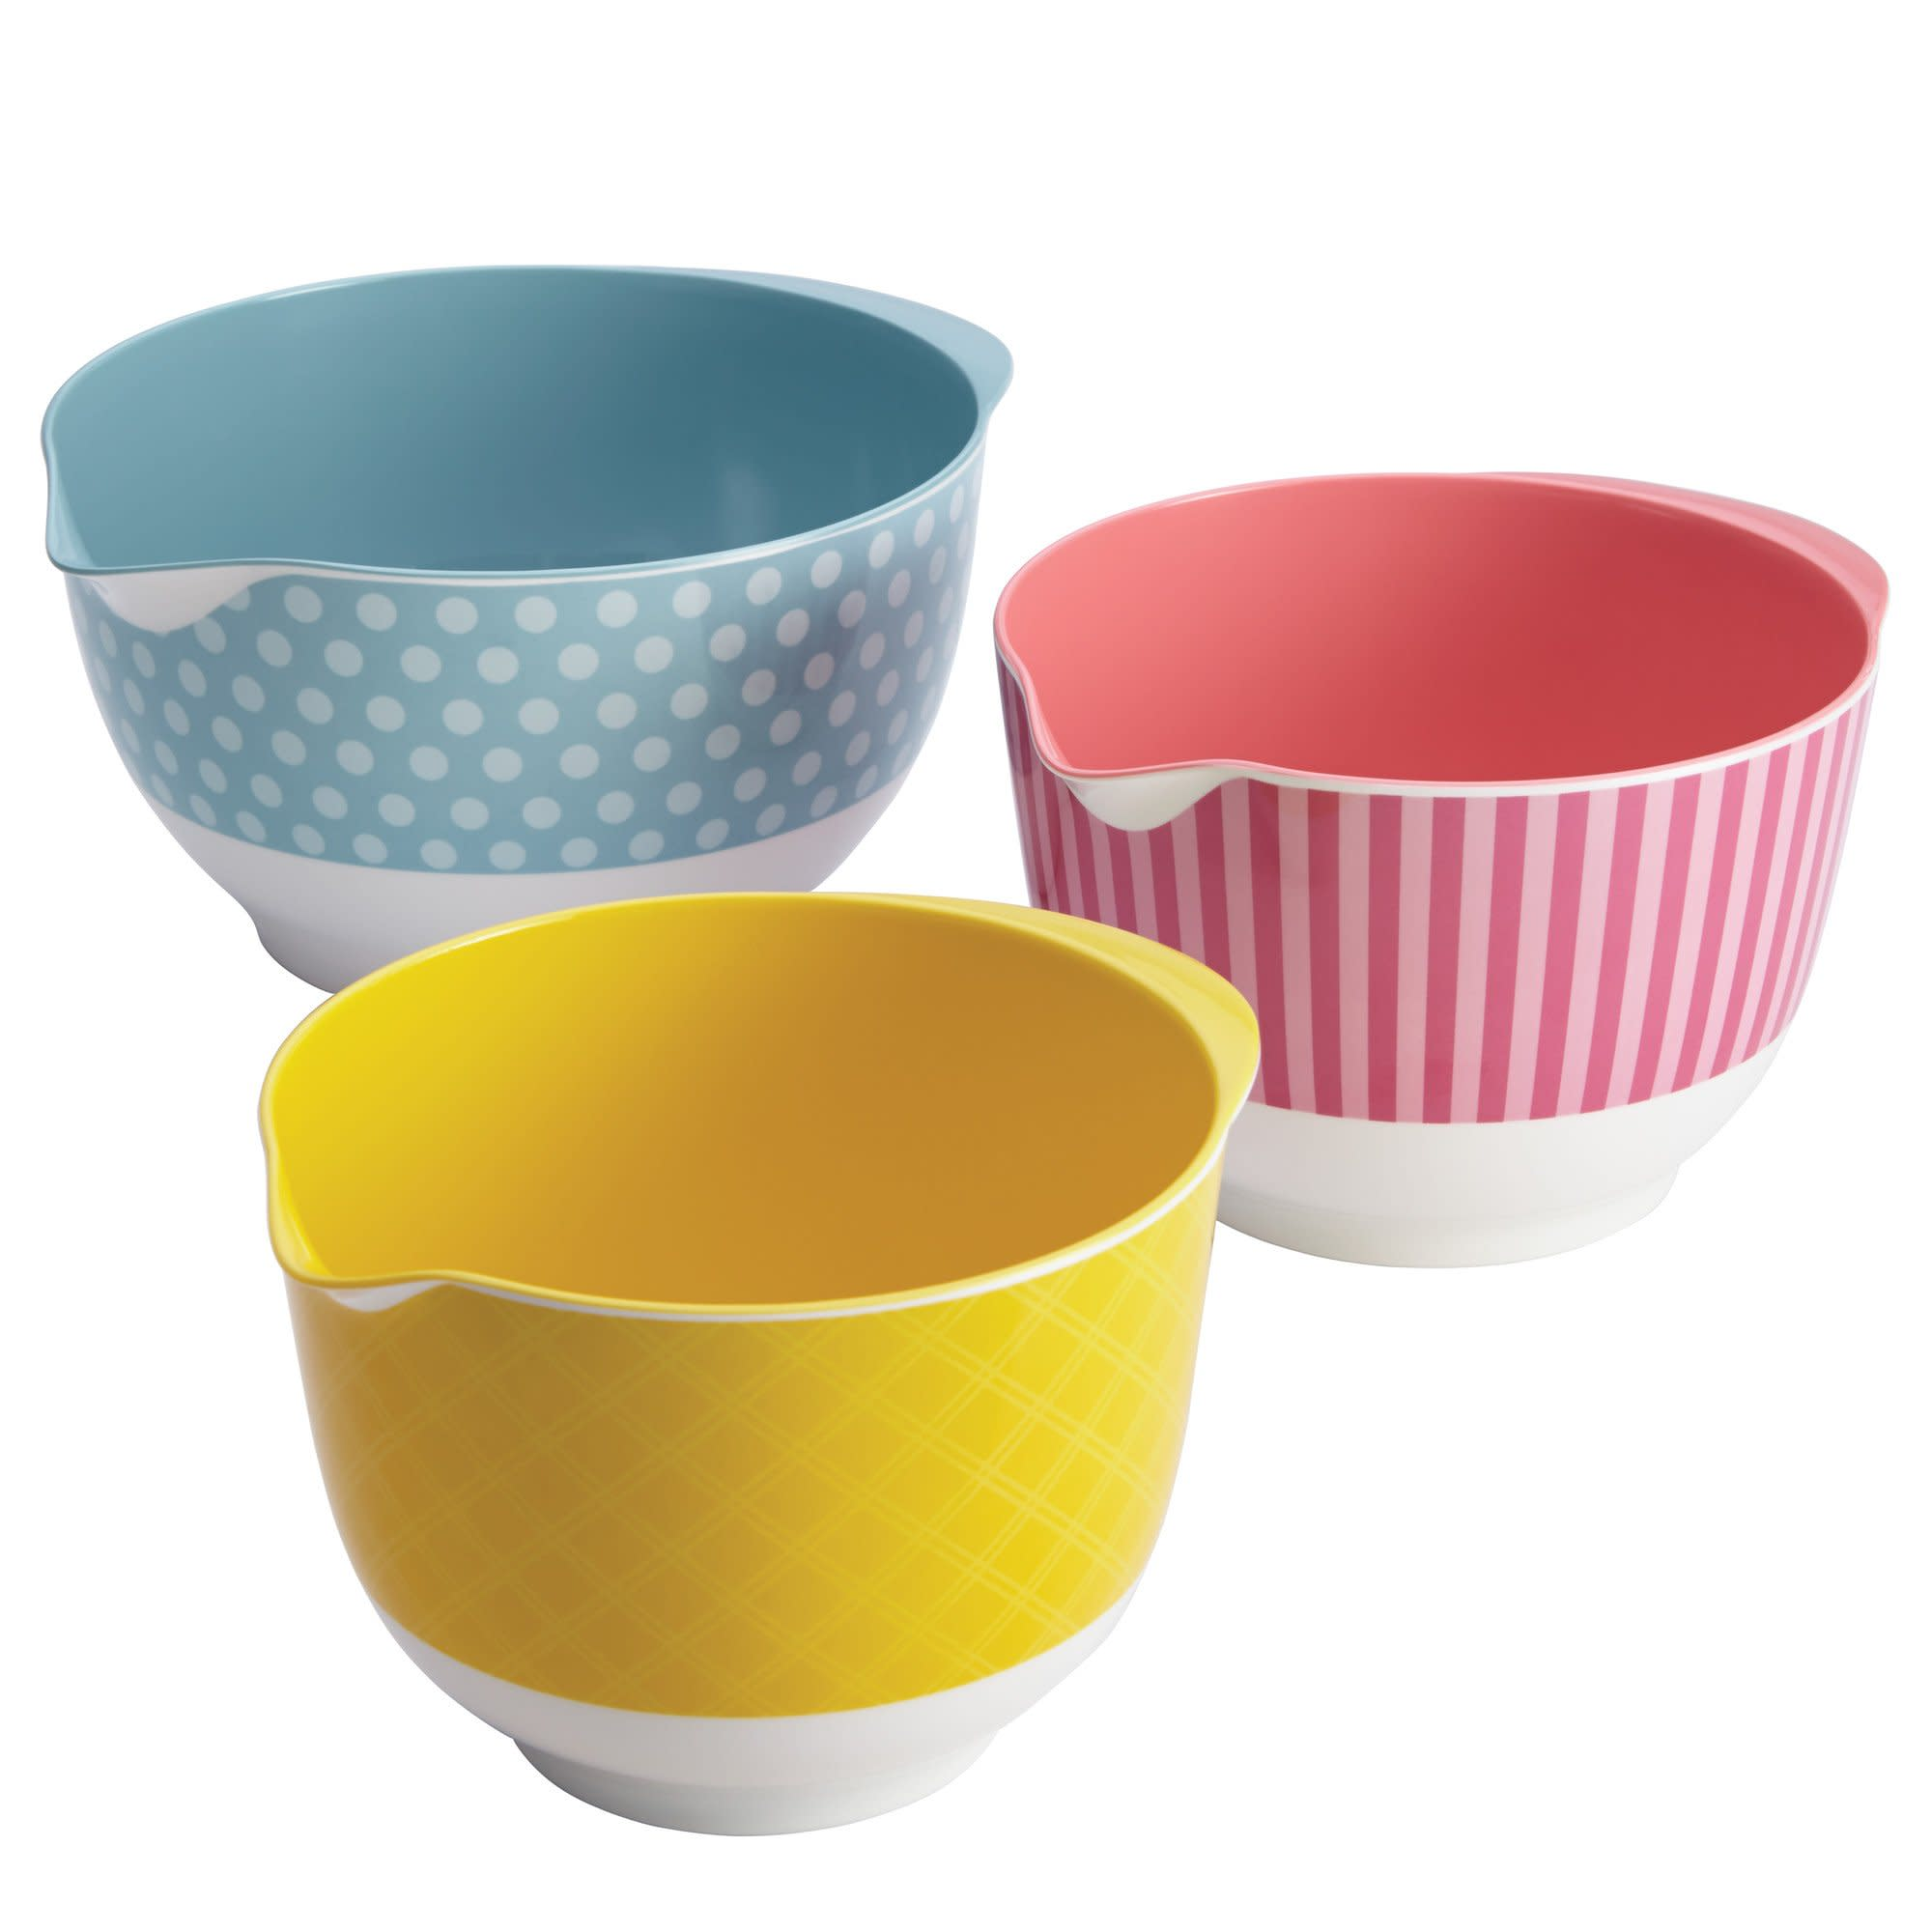 15 Classic Mixing Bowls with Pouring Spouts: gallery image 3